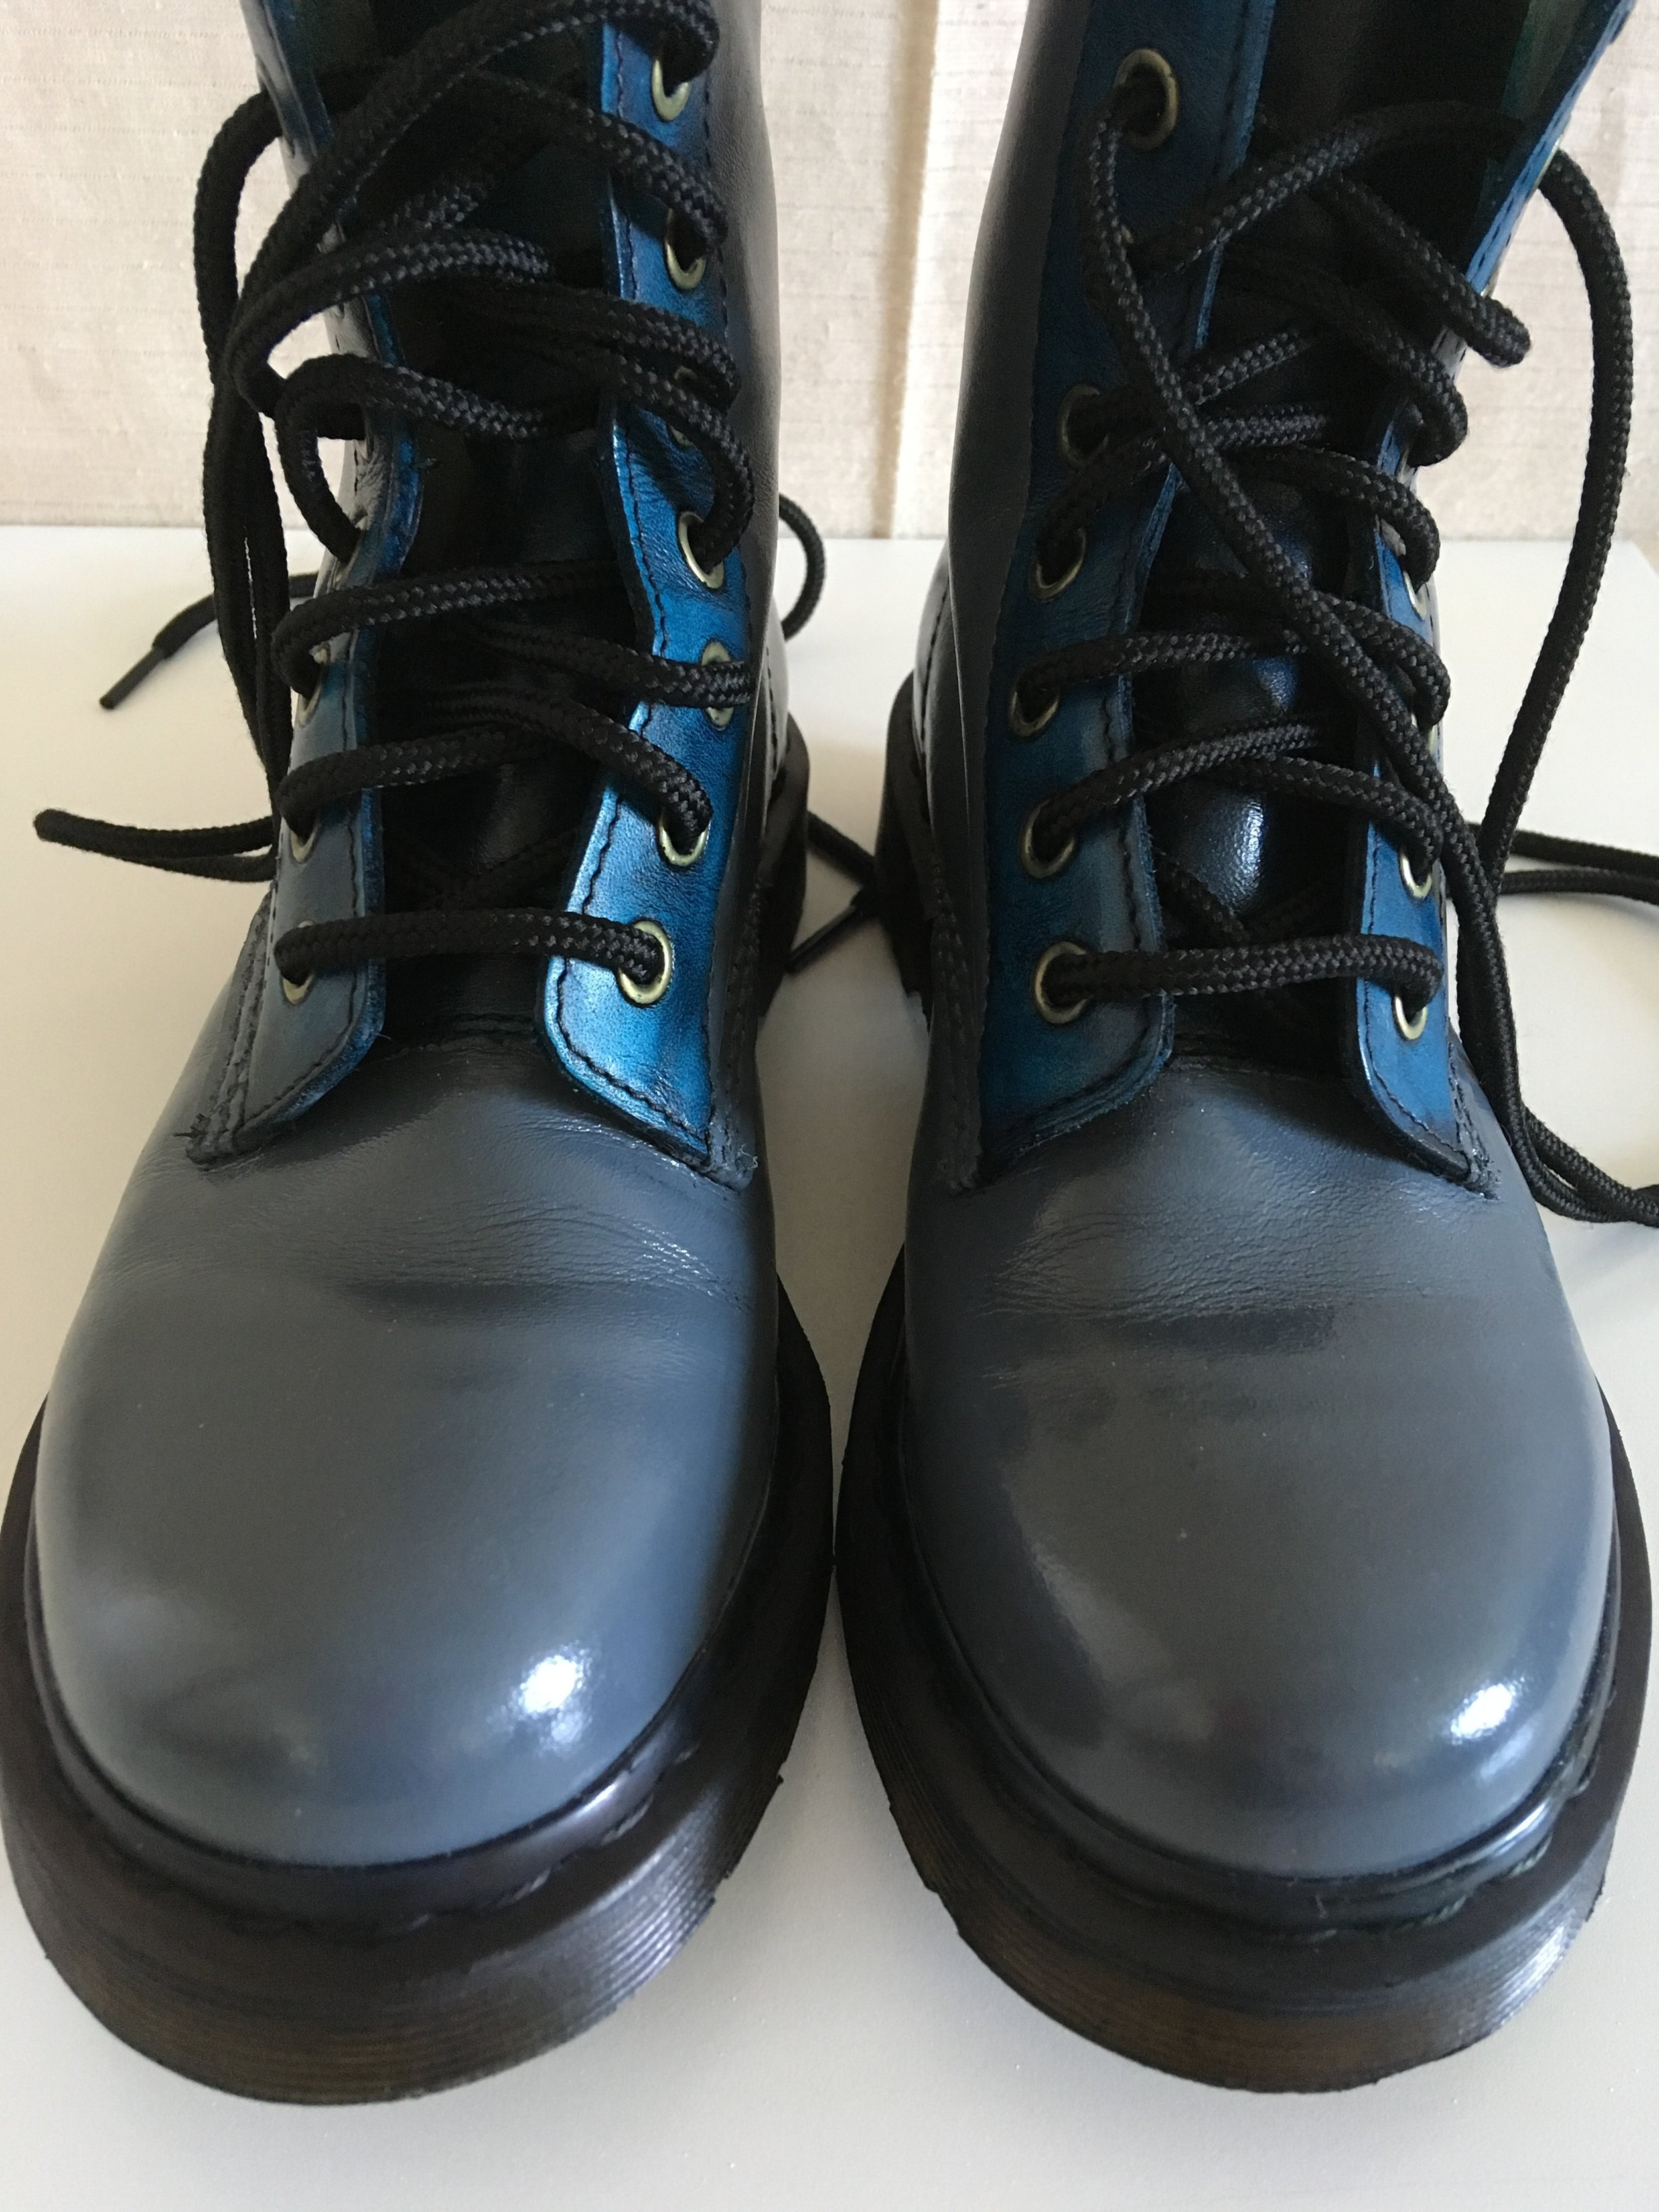 Dr. Martens refinished with a Slate blue/gray , and a sparkle of two toned aqua on the heel.